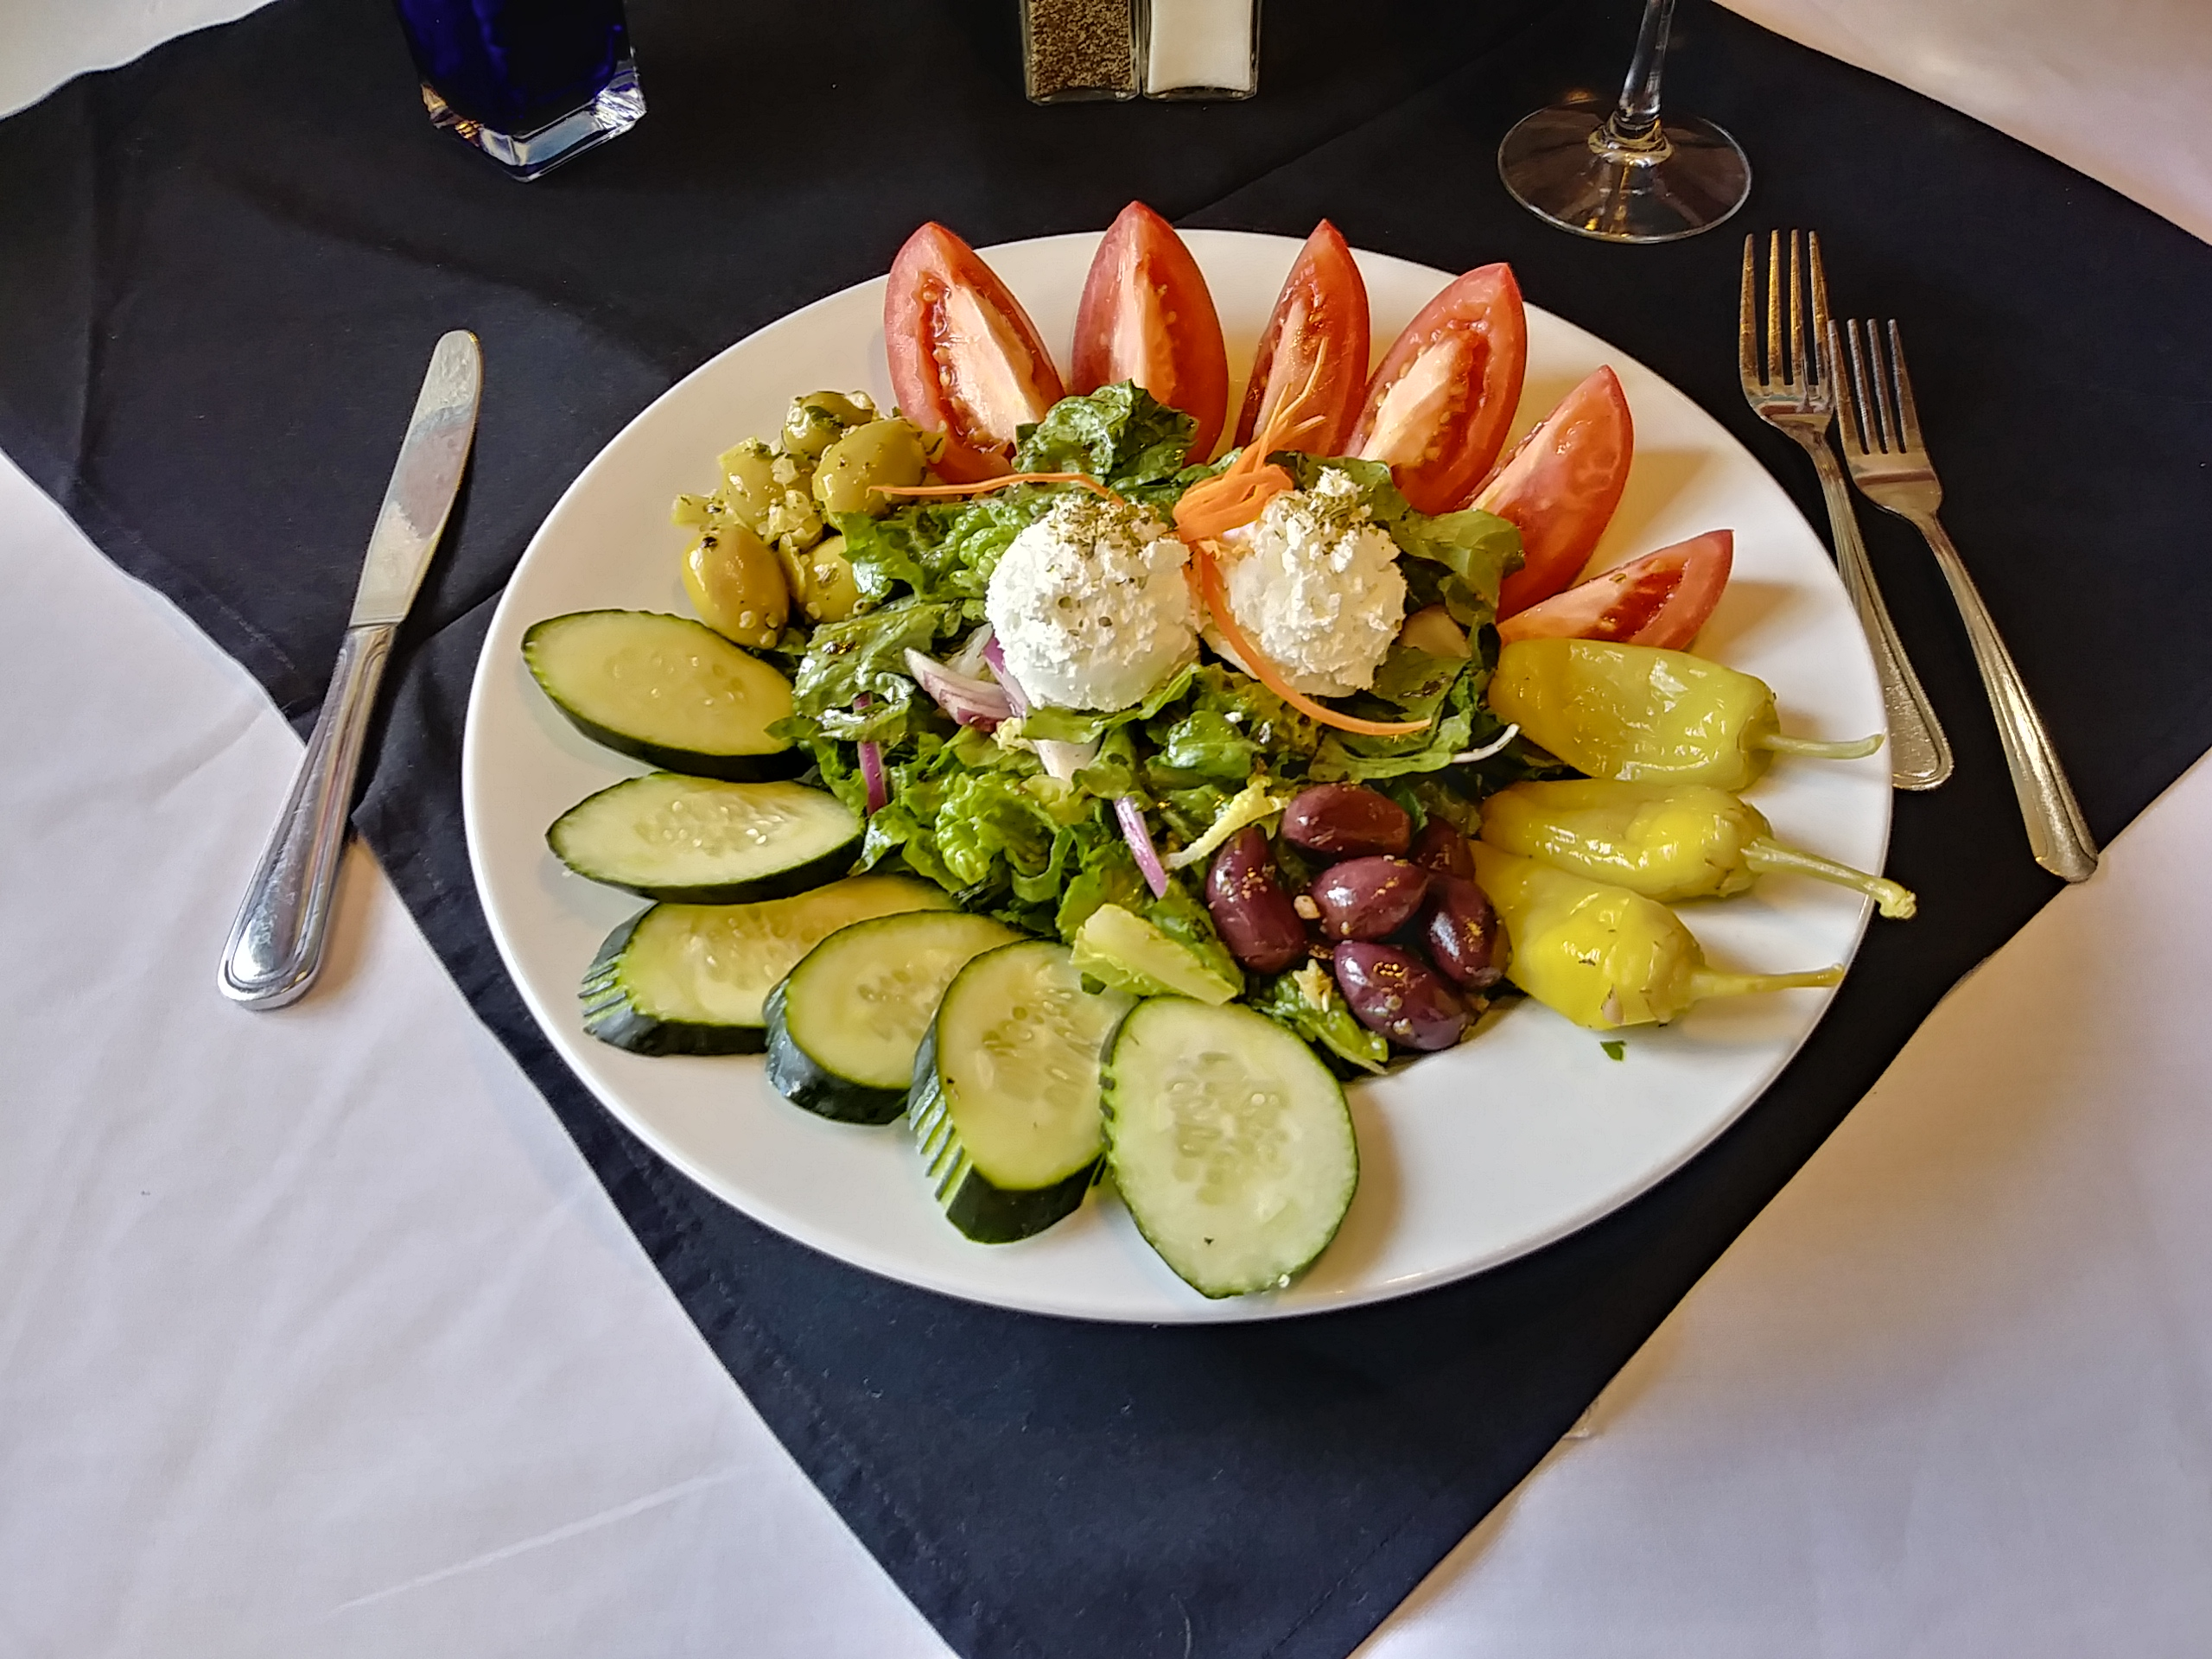 Photo of Jake and Telly's Family Sized Greek Salad on a white plate: Hand cut romaine lettuce, fresh tomato, cucumber, red onion, marinated olives, pepperoncini peppers, feta cheese topped with our house-made herbed vinaigrette dressing.